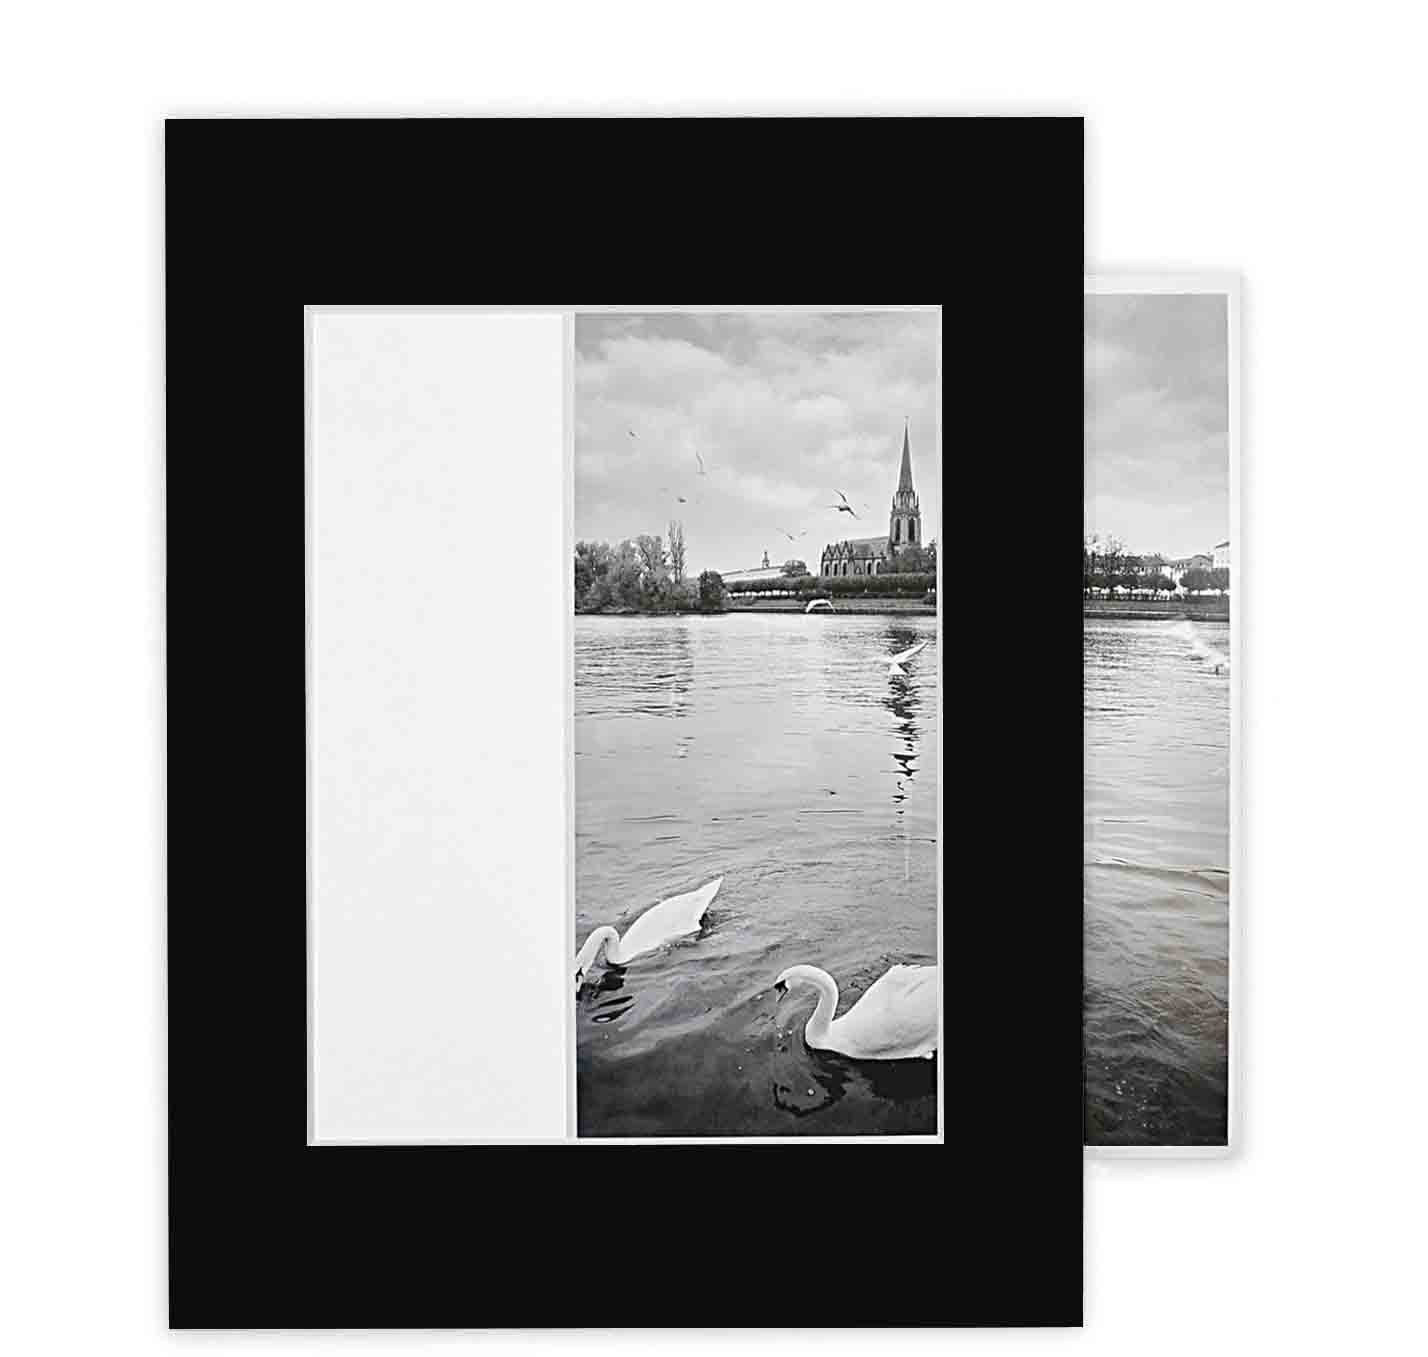 Golden State Art, Pack of 10 Black 11x14 Self-assemble Photo Mat for 8x10 picture with backing board pre-gummed, Includes 10 clear bags A142-SA-10Kit-1114-810